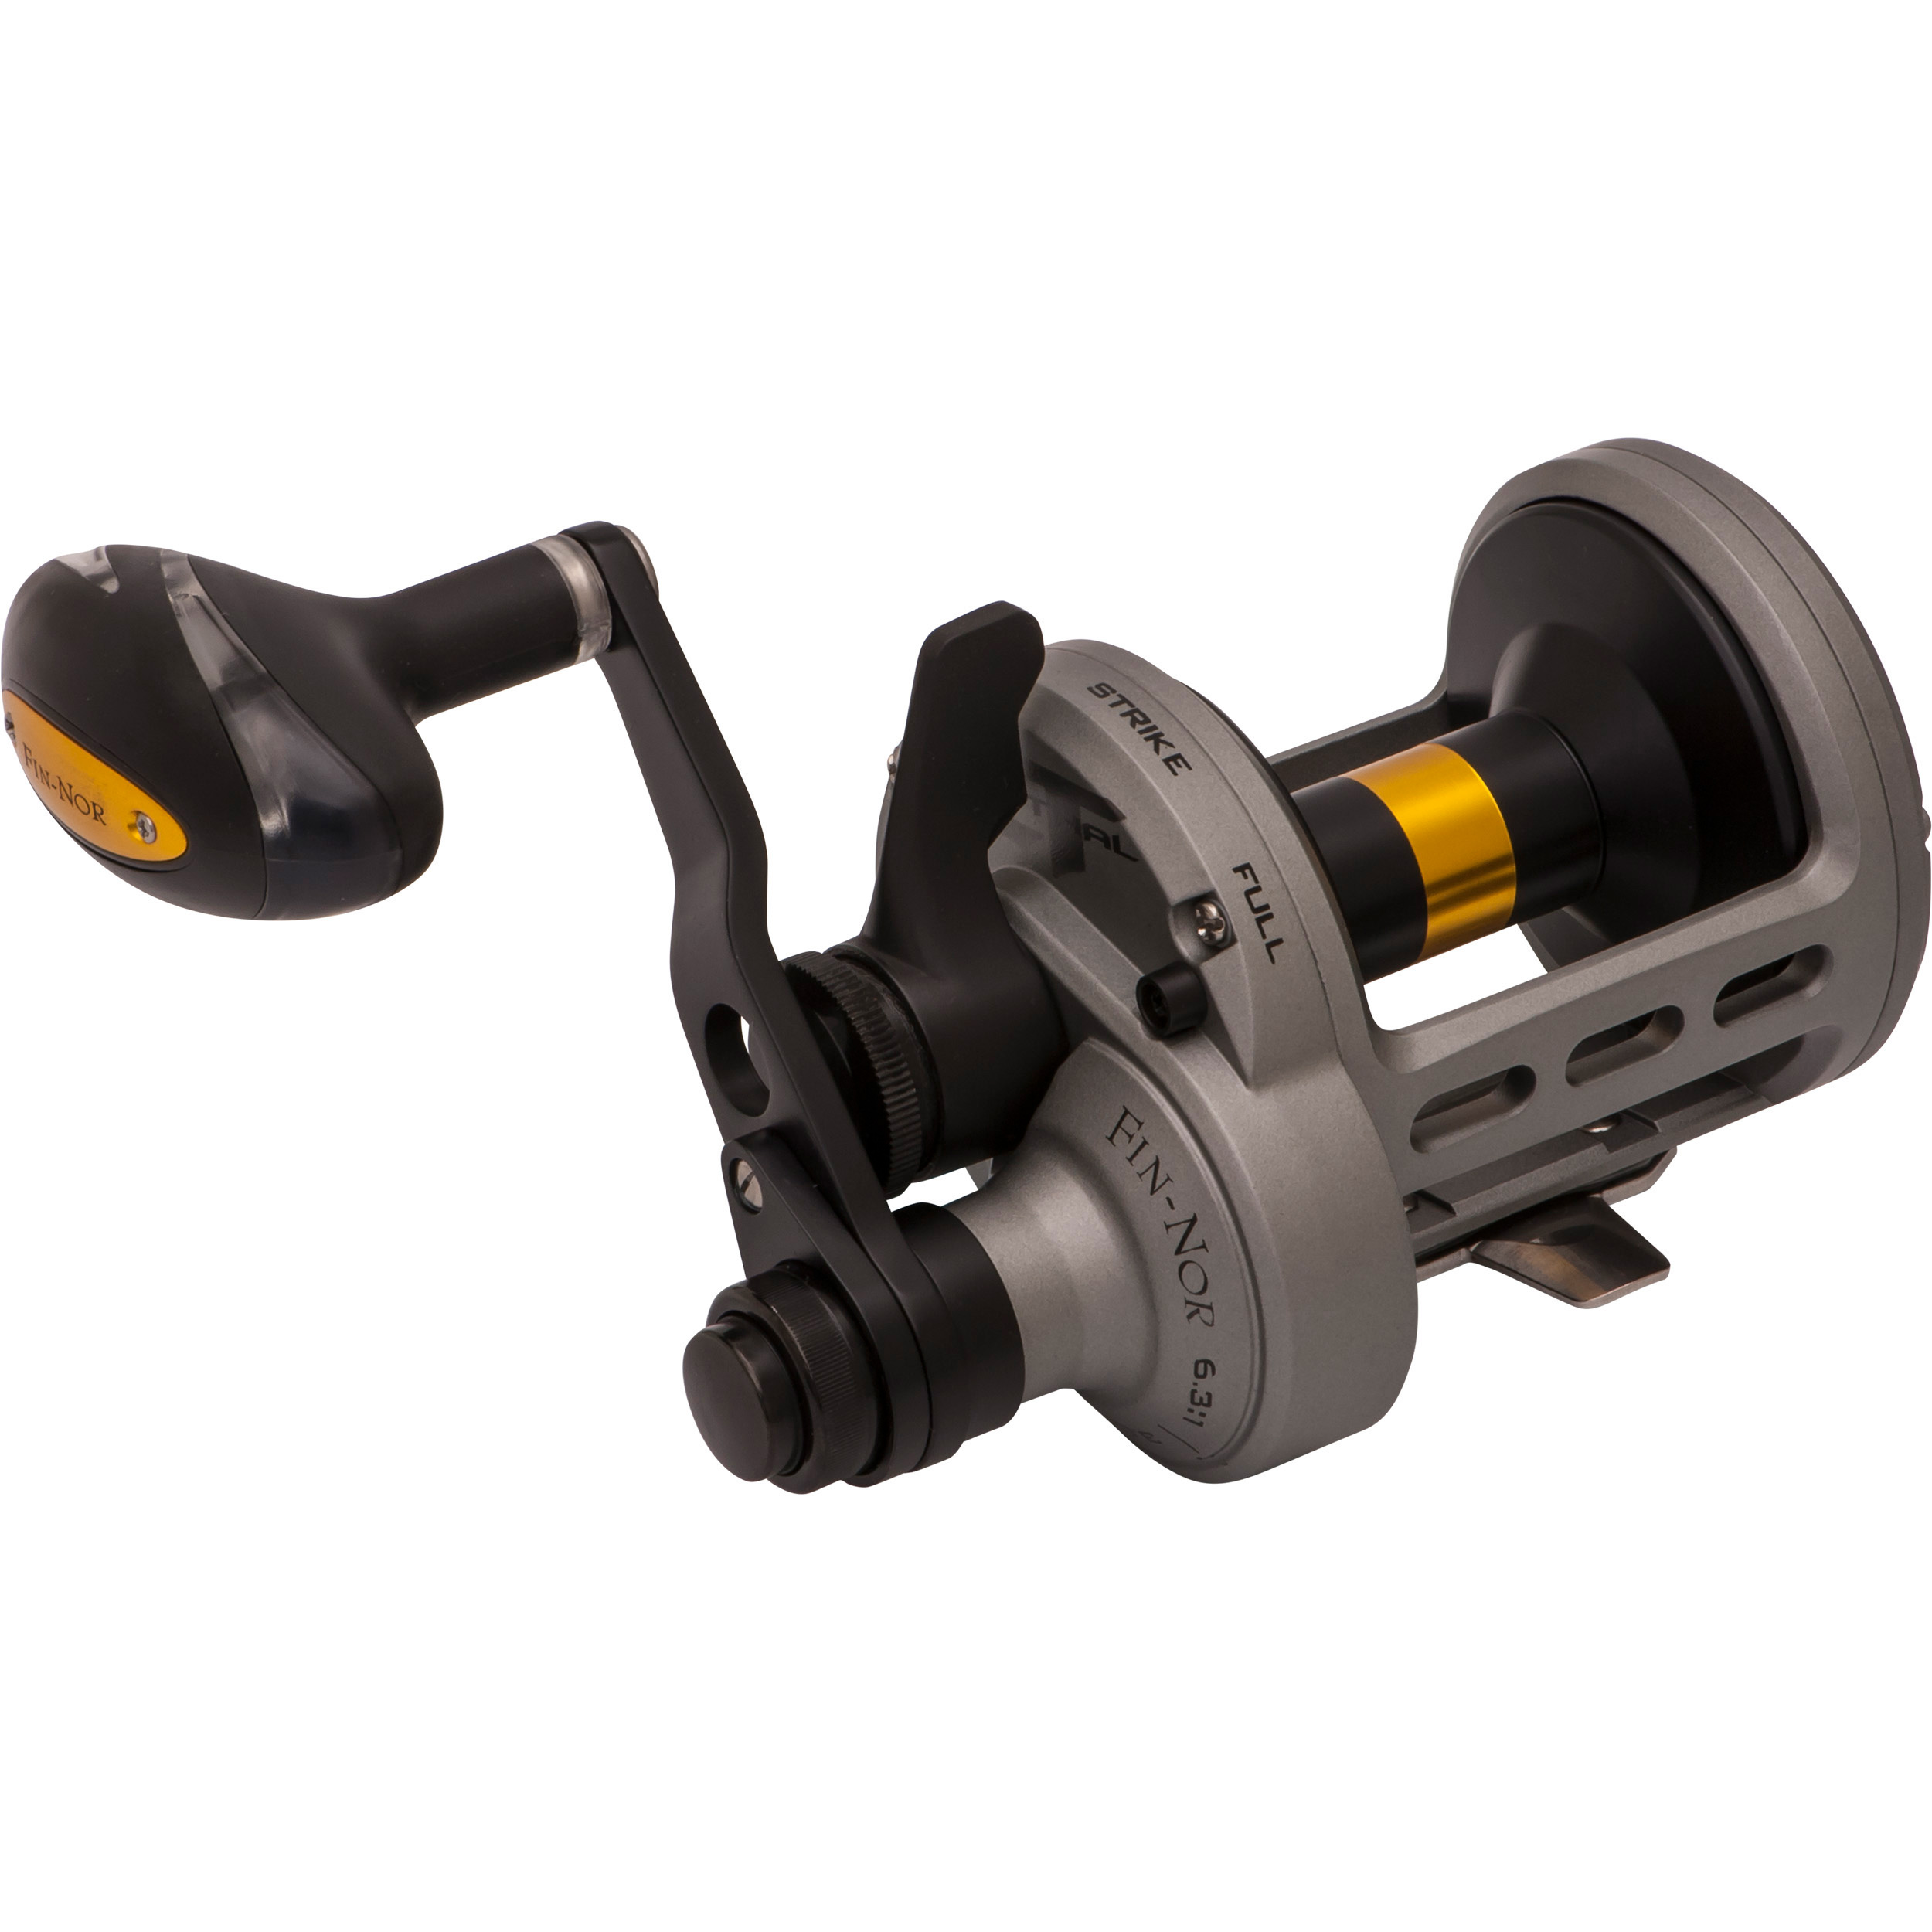 FIN-NOR LETHAL TWO SPEED LEVER DRAG REEL LTL30II